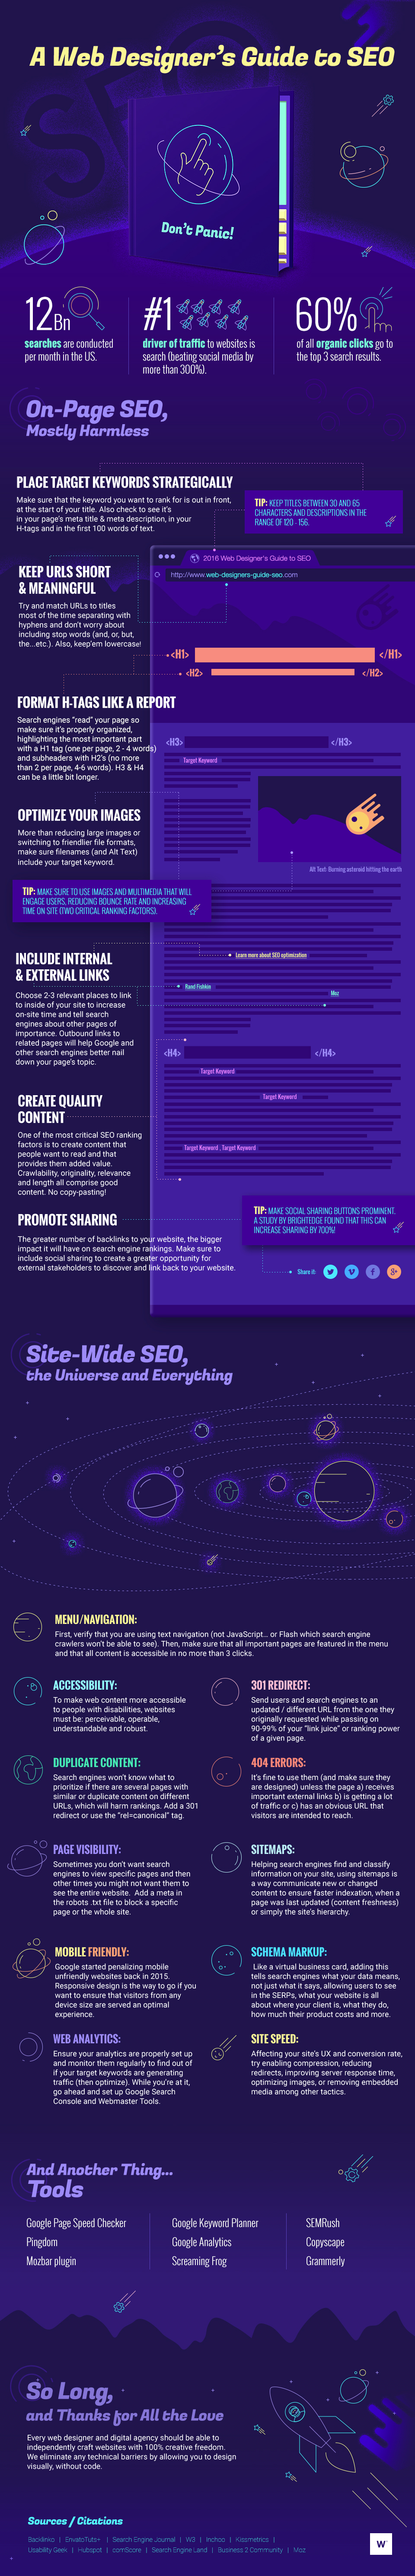 A Web Designers Guide to SEO